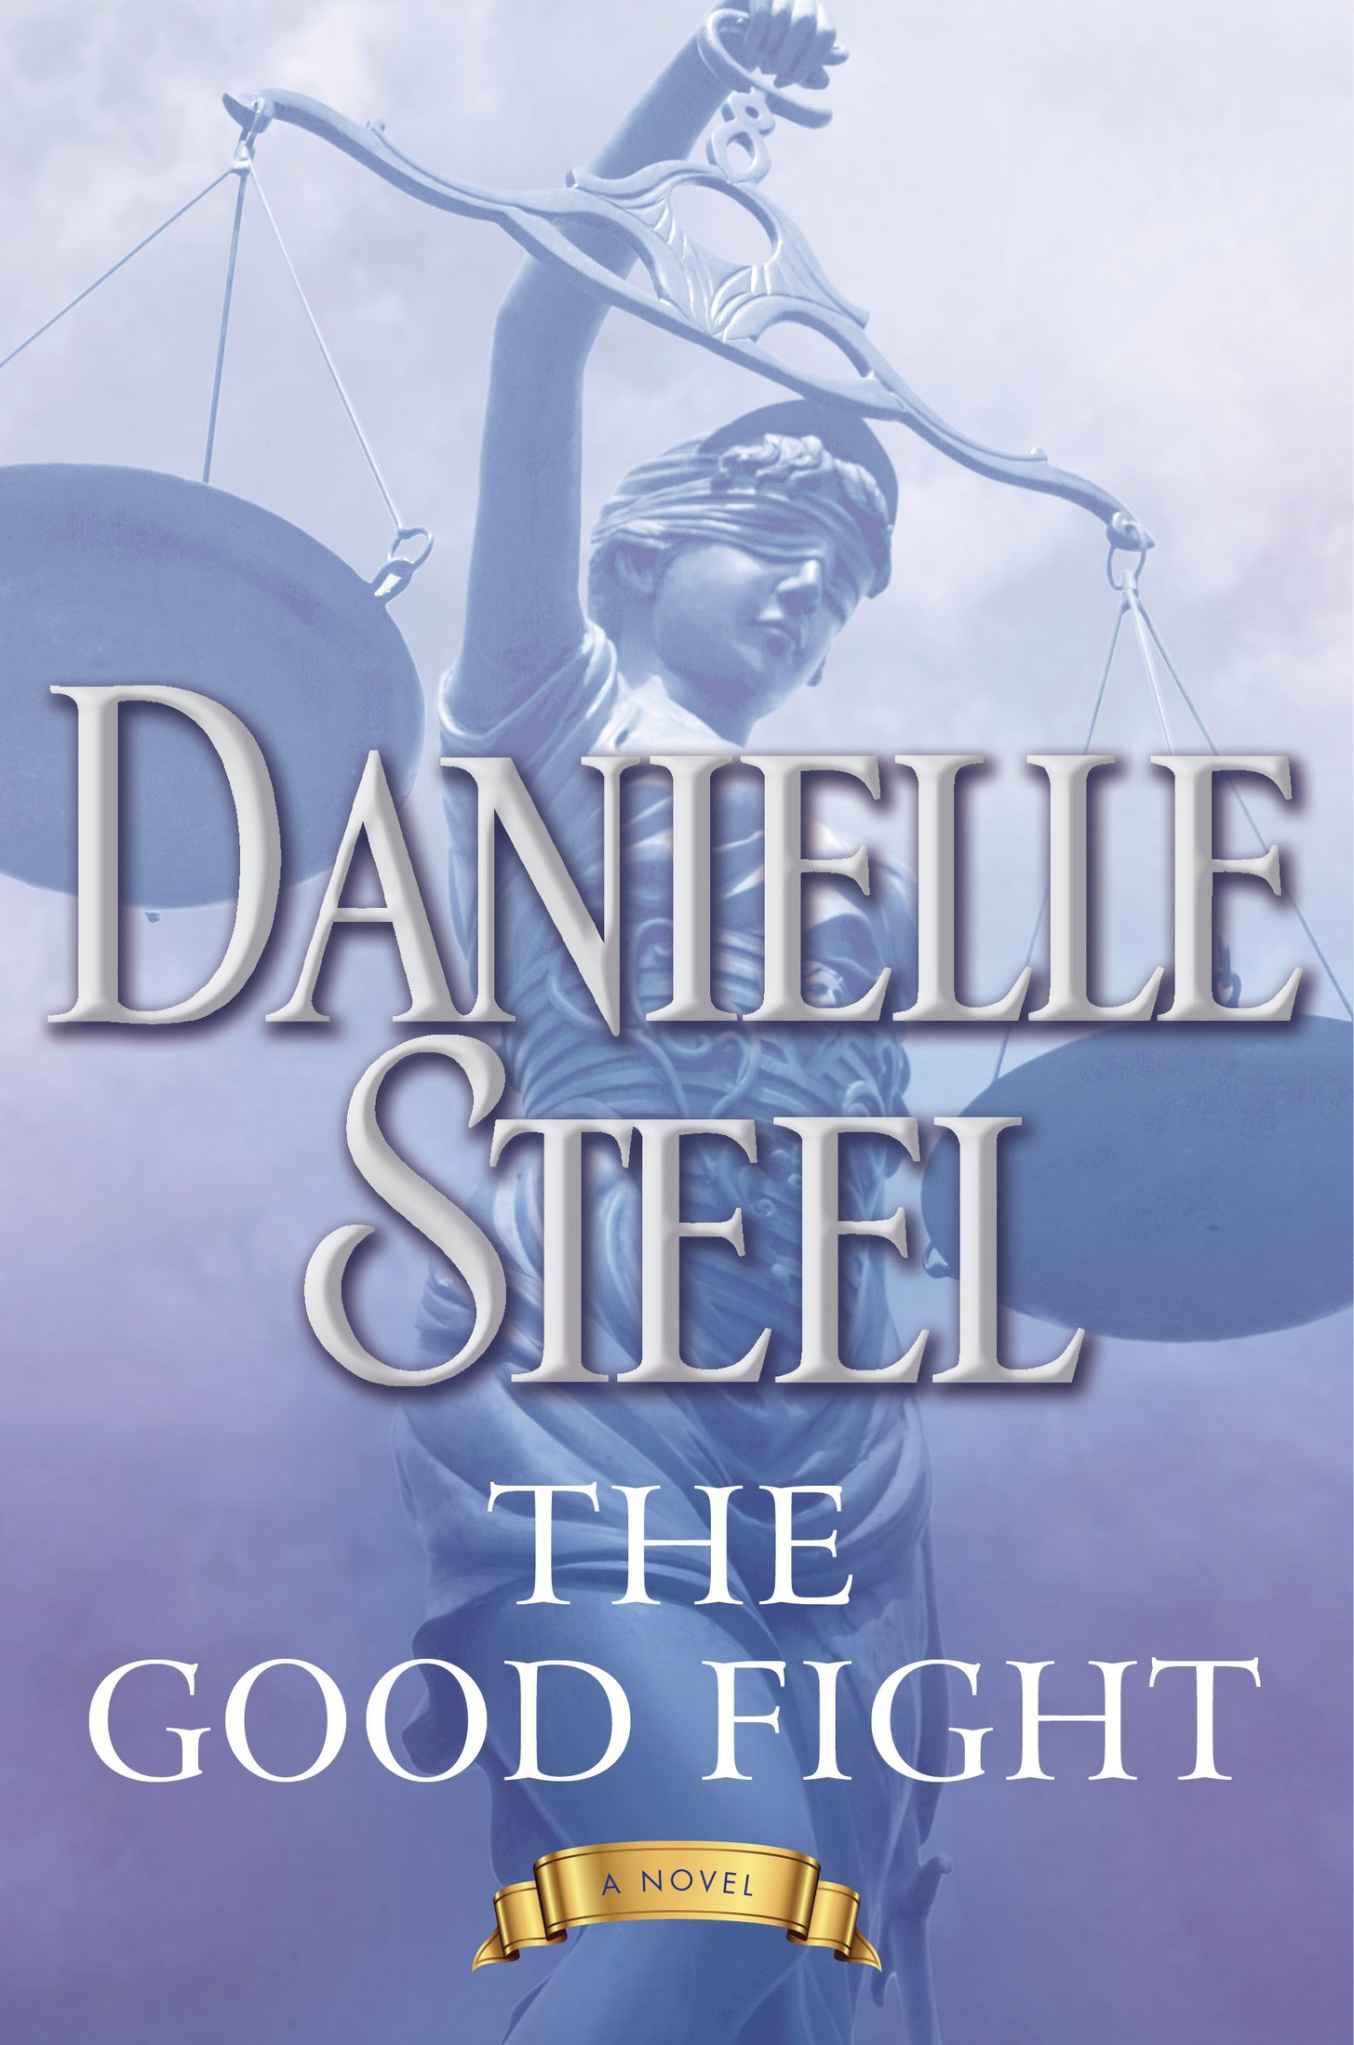 The Good Fight: A Novel - Danielle Steel [kindle] [mobi]